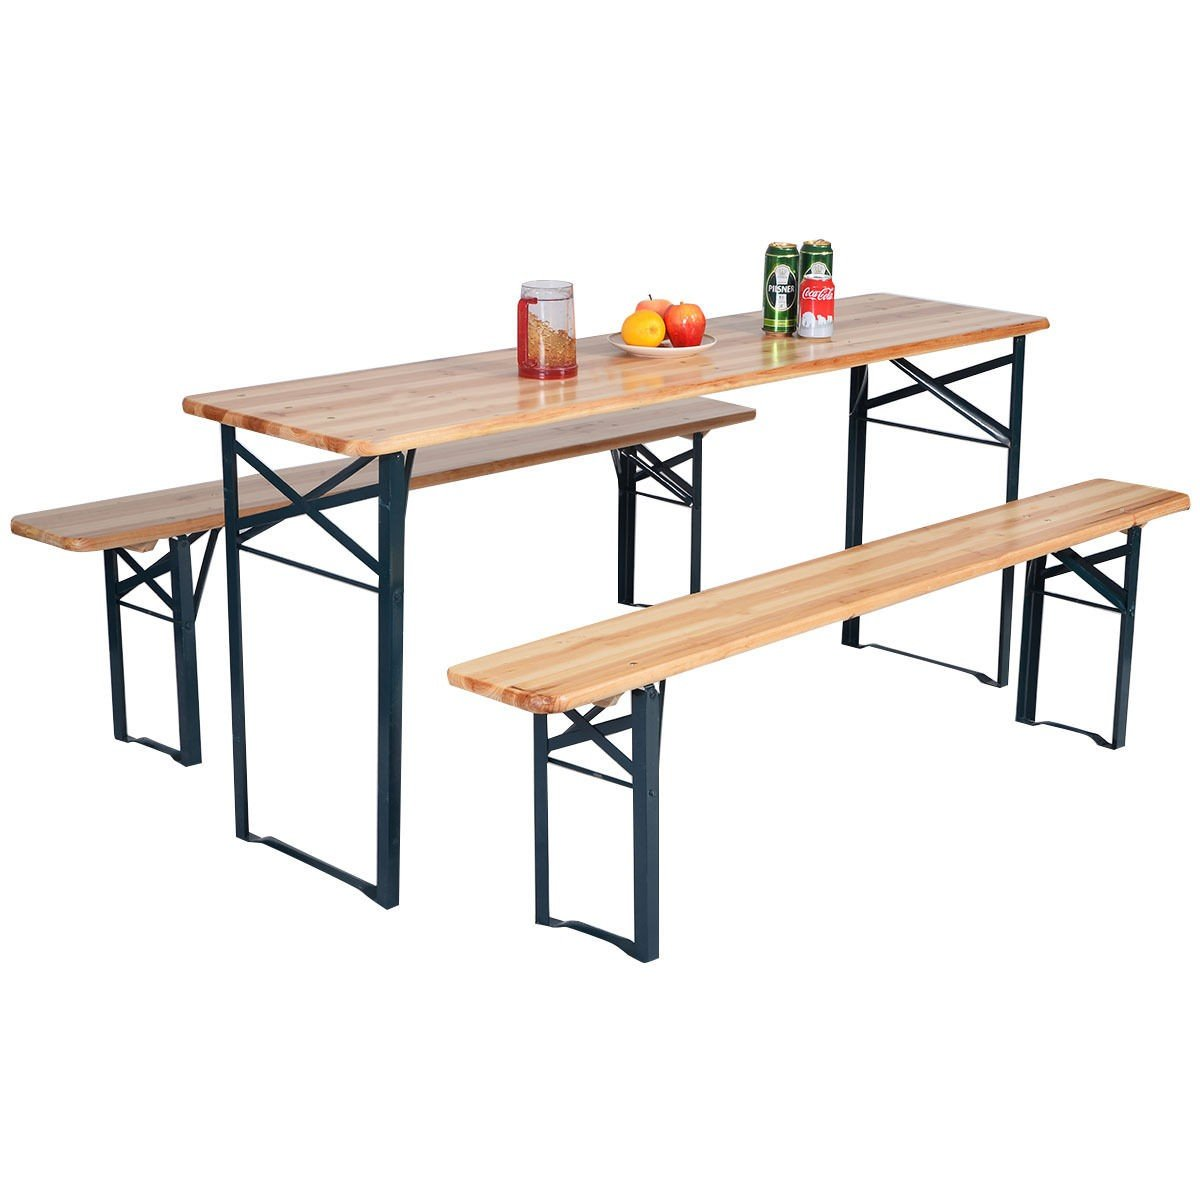 Amazon.com 3 PCS Beer Table Bench Set Folding Wooden Top Picnic Table Patio Garden Kitchen \u0026 Dining  sc 1 st  Amazon.com : garden table and bench set - pezcame.com